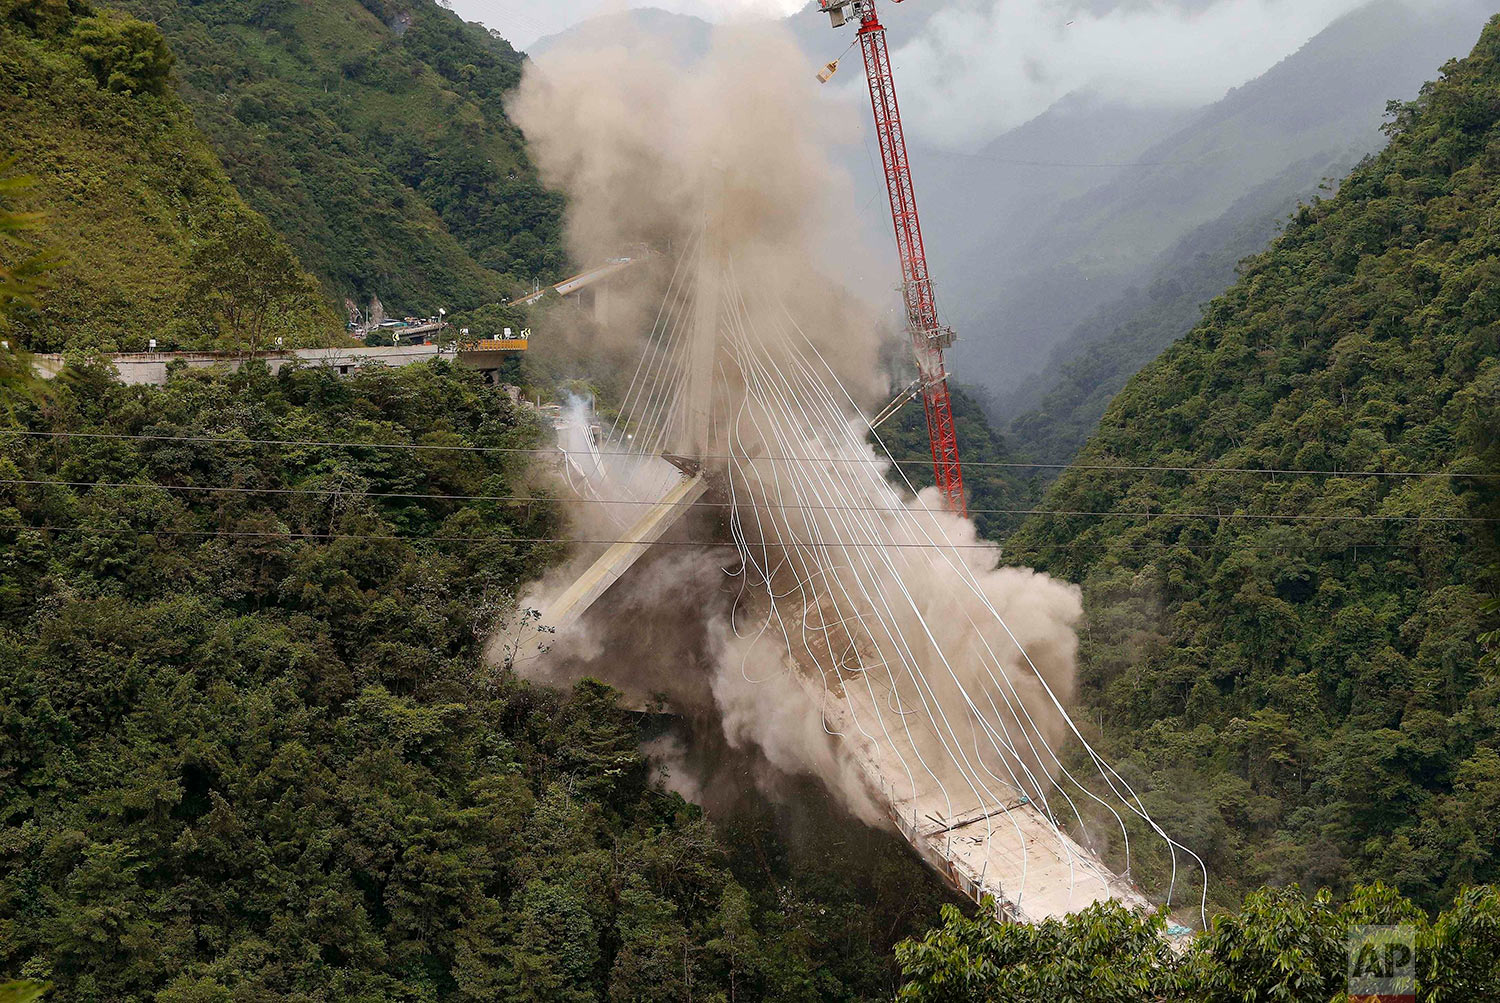 A partially-built suspension bridge is demolished by engineers in Chirajara, Colombia, July 11, 2018. One part of the bridge collapsed in January during its construction, killing at least nine workers. (AP Photo/Fernando Vergara)